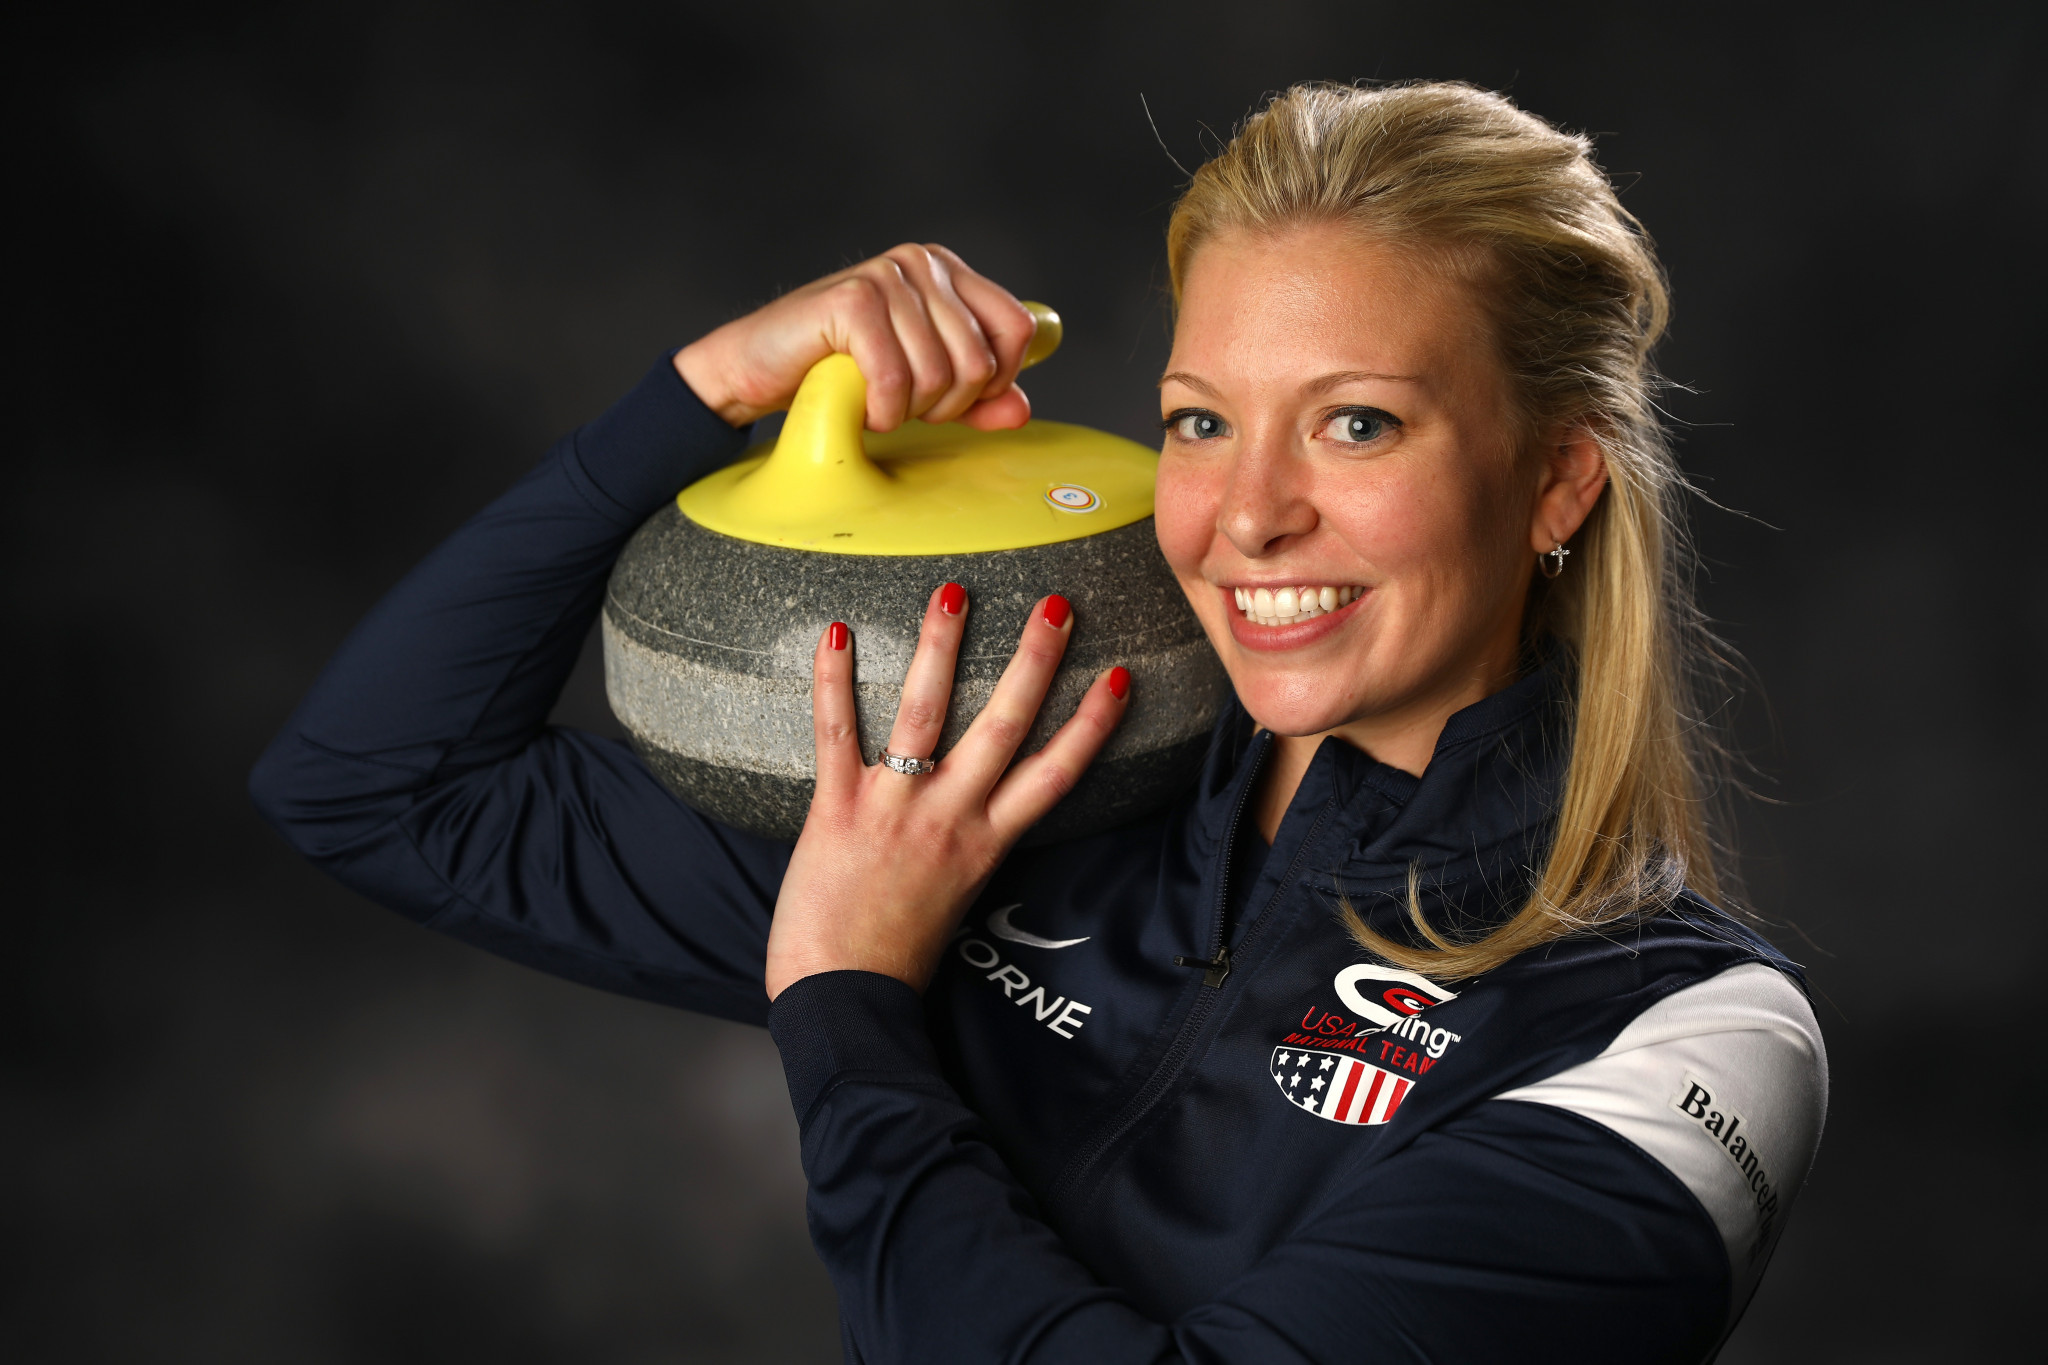 Roth well placed for Pyeongchang in US Curling trials